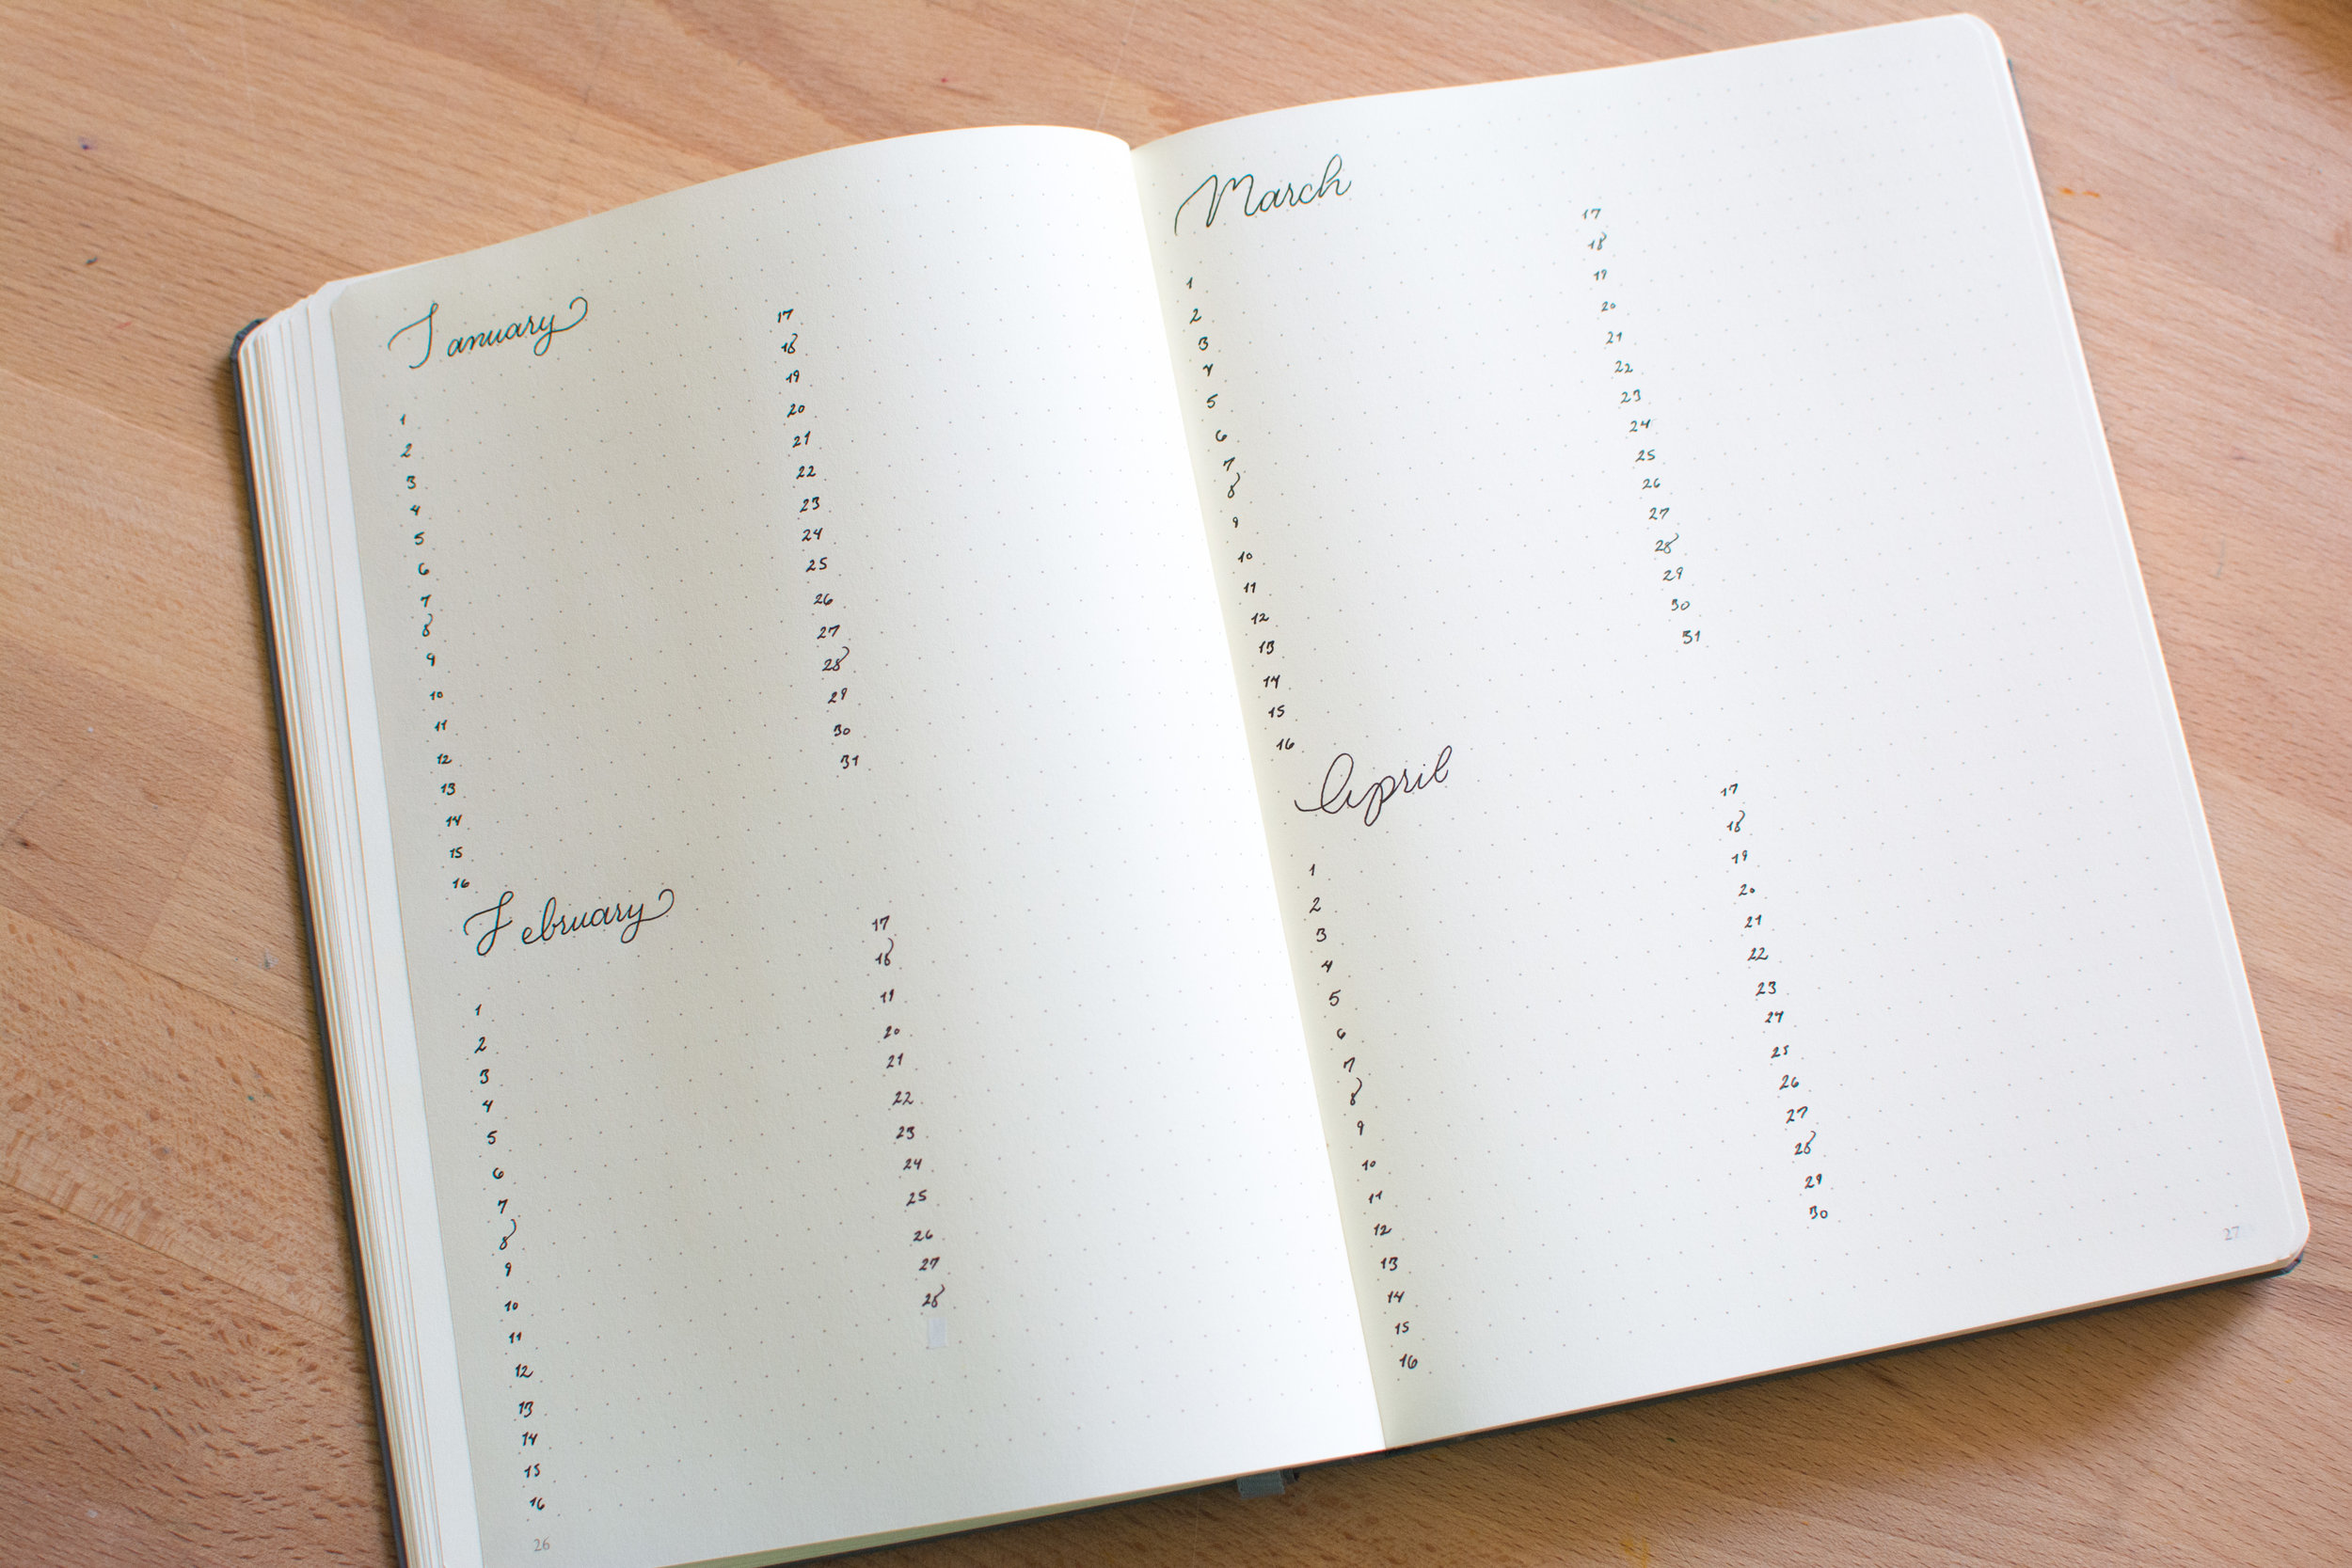 Future Log by Days, a method with enough room to write a short snippet of what's going on or to act as a memory log.